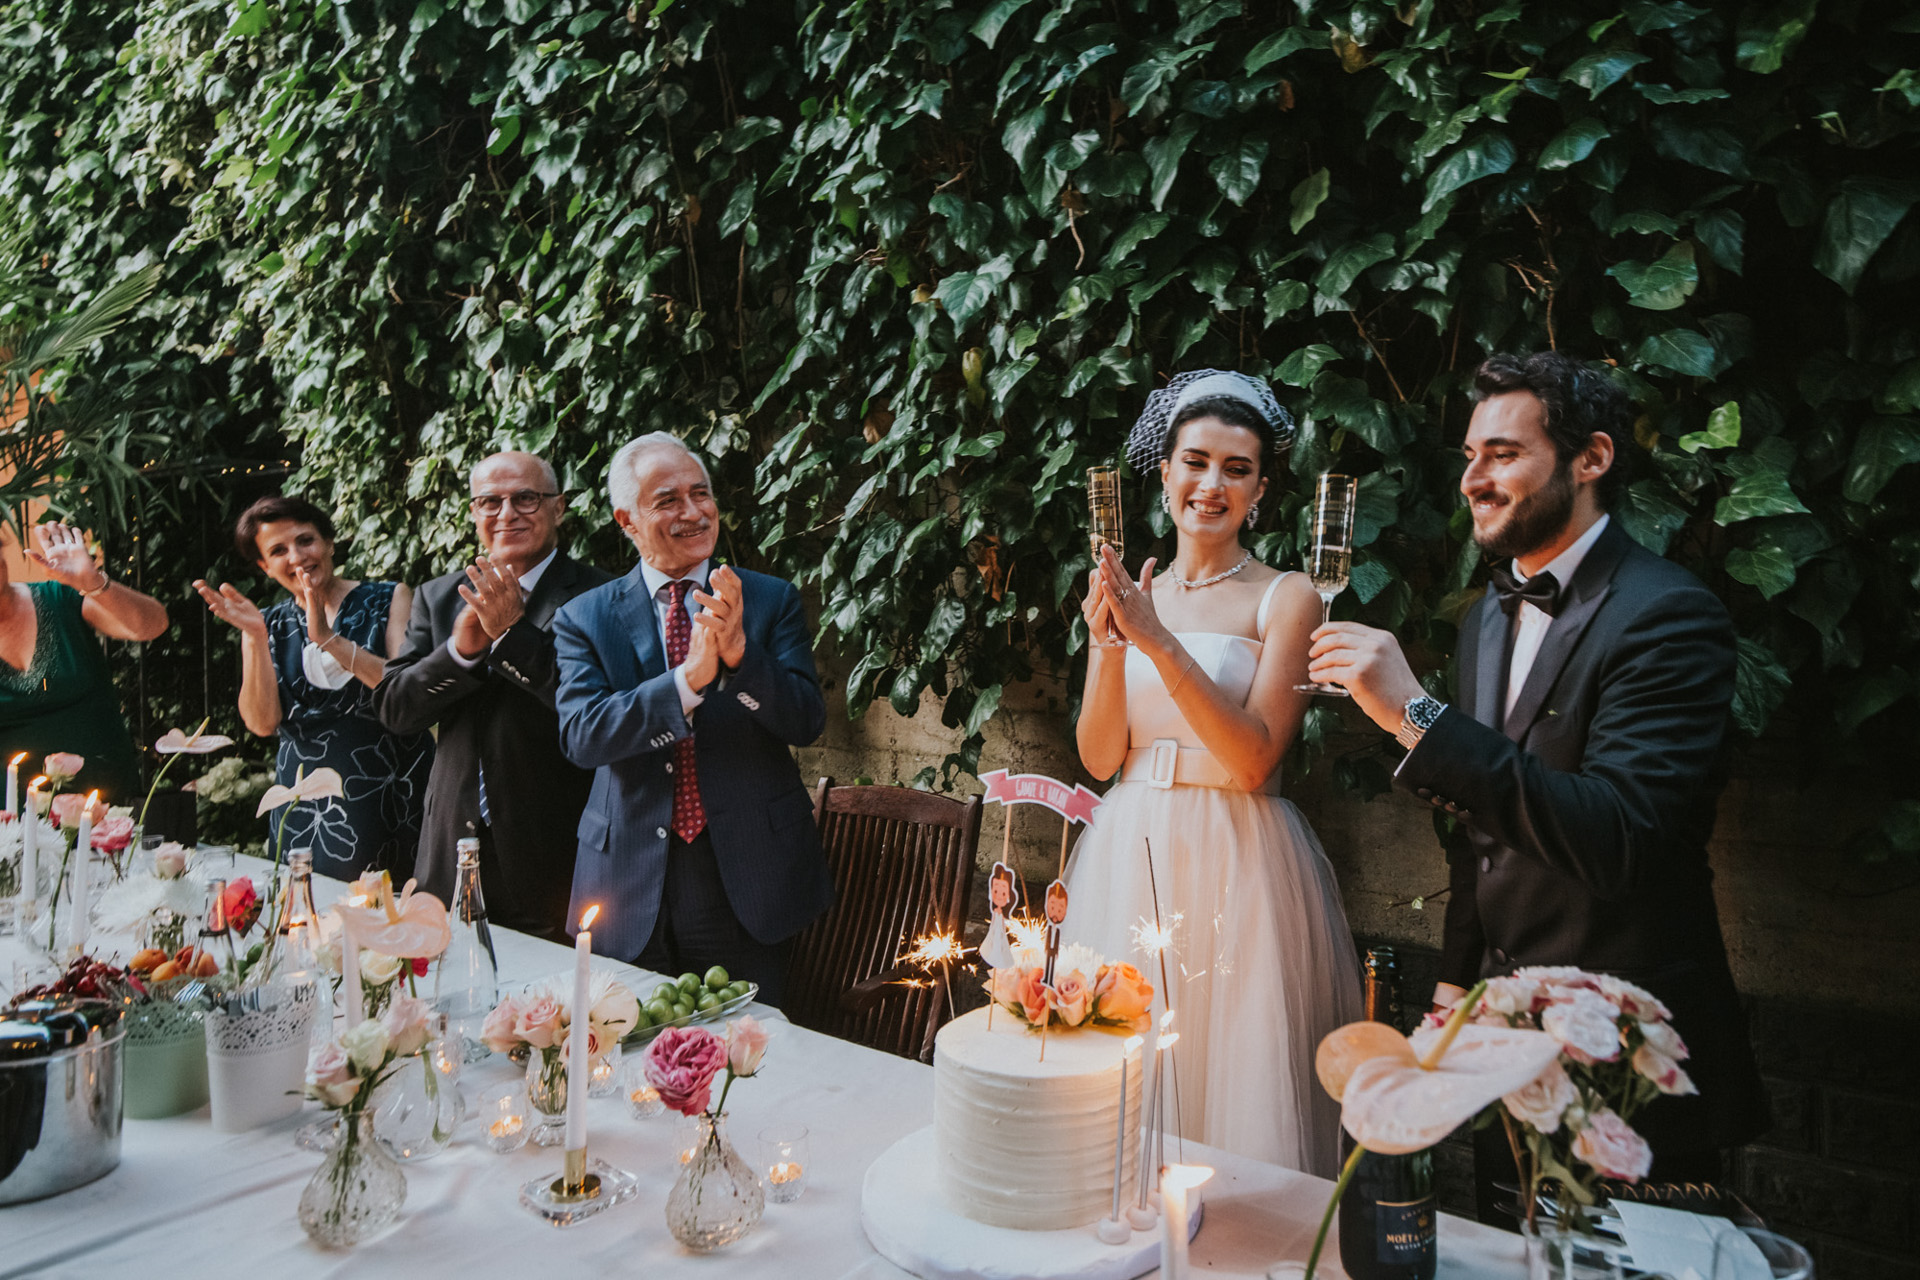 Elopement Ceremony Photographers in Istanbul | The bride and the couple's family members all share a cheerful moment